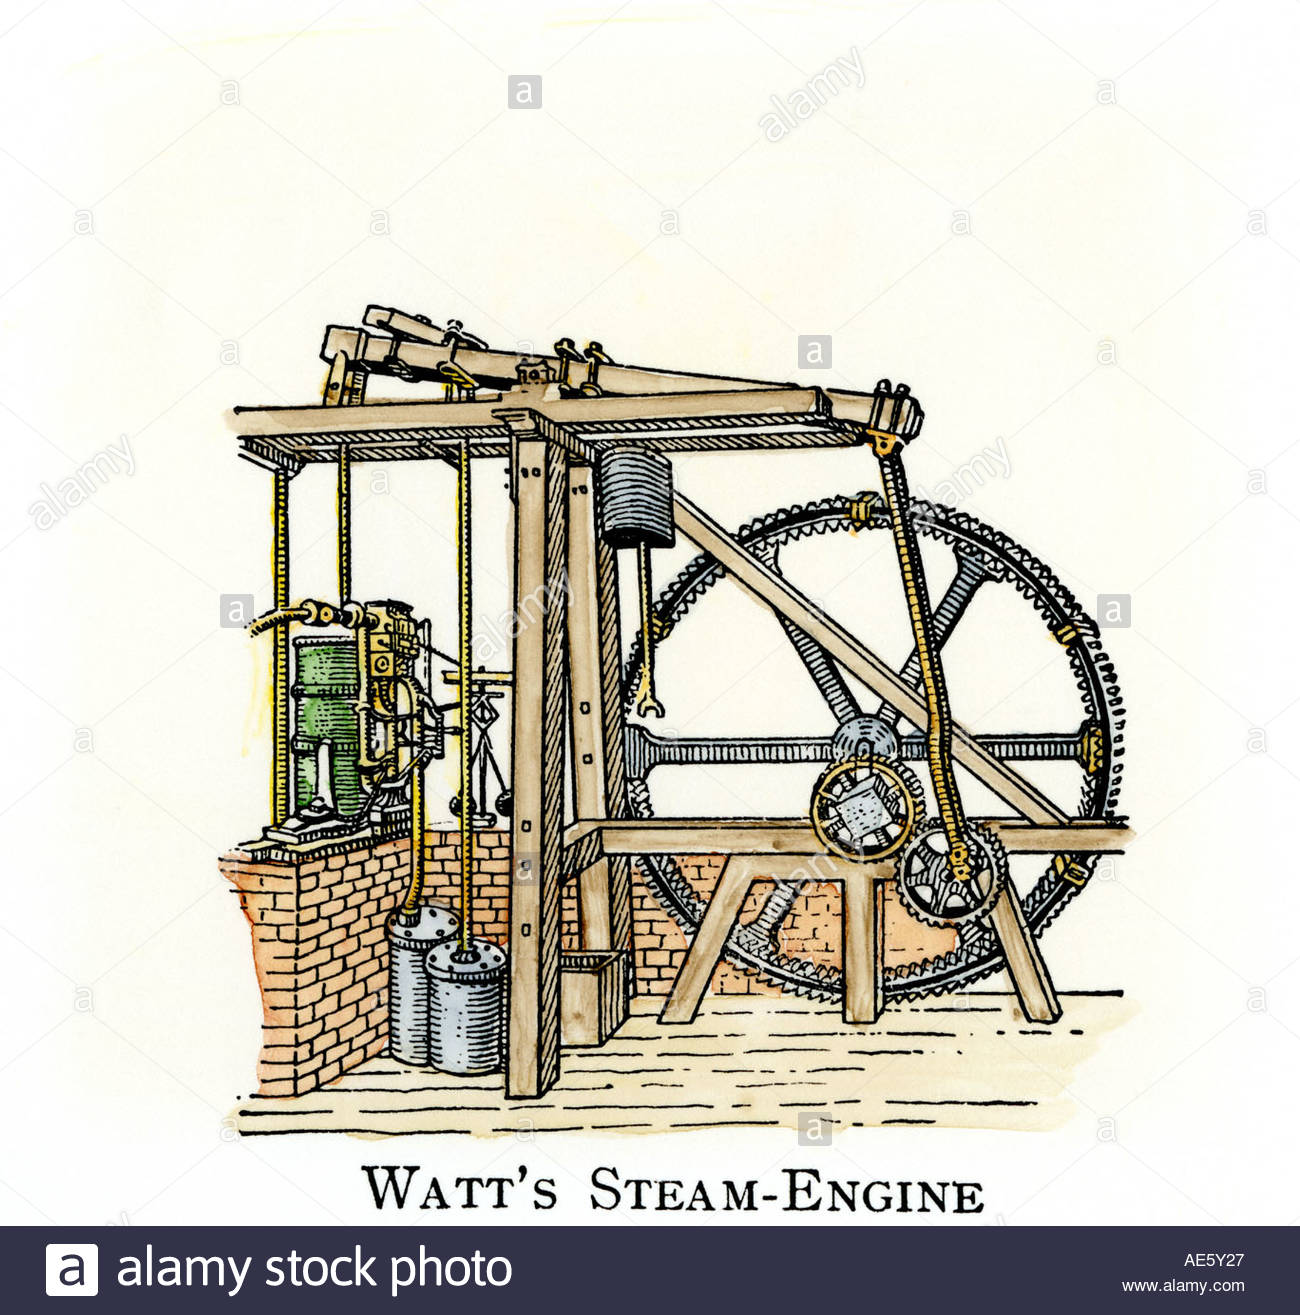 1300x1315 Schematic Drawing Of James Watt Steam Engine Stock Photo 4433702